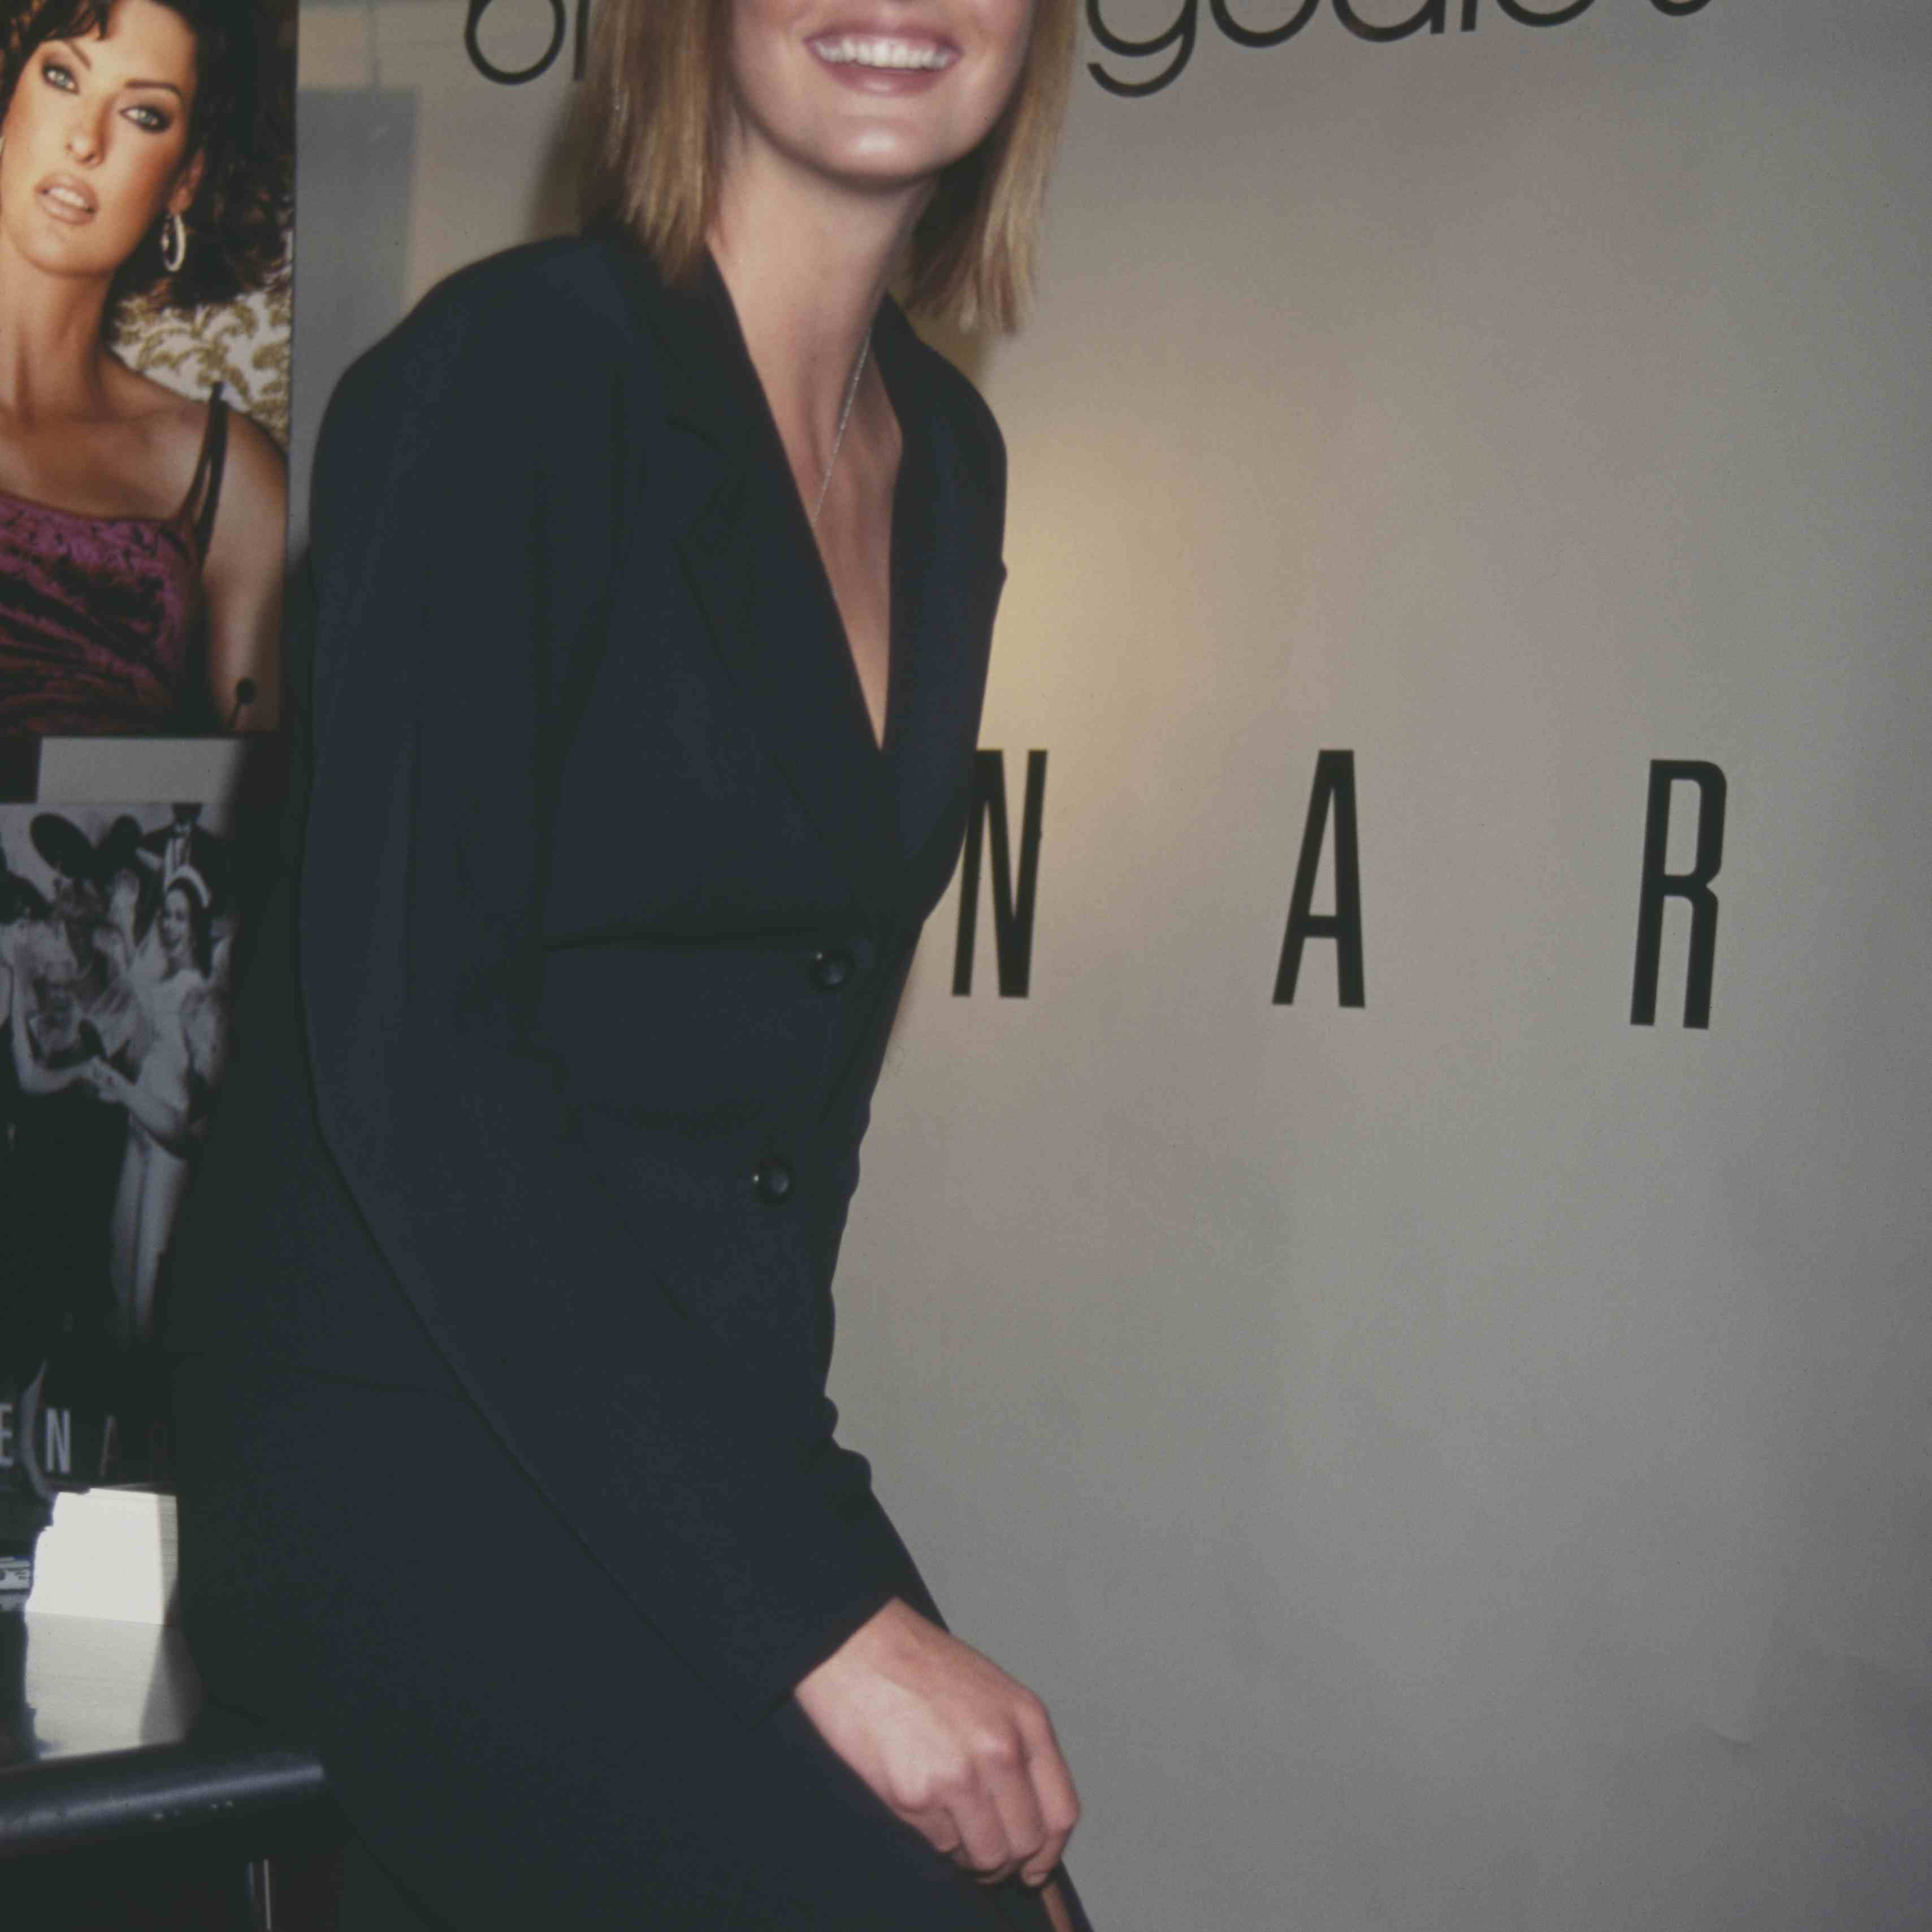 Canadian model Linda Evangelista attends an event for Kenar at Bloomingdale's department store, New York City, USA, circa 1997.